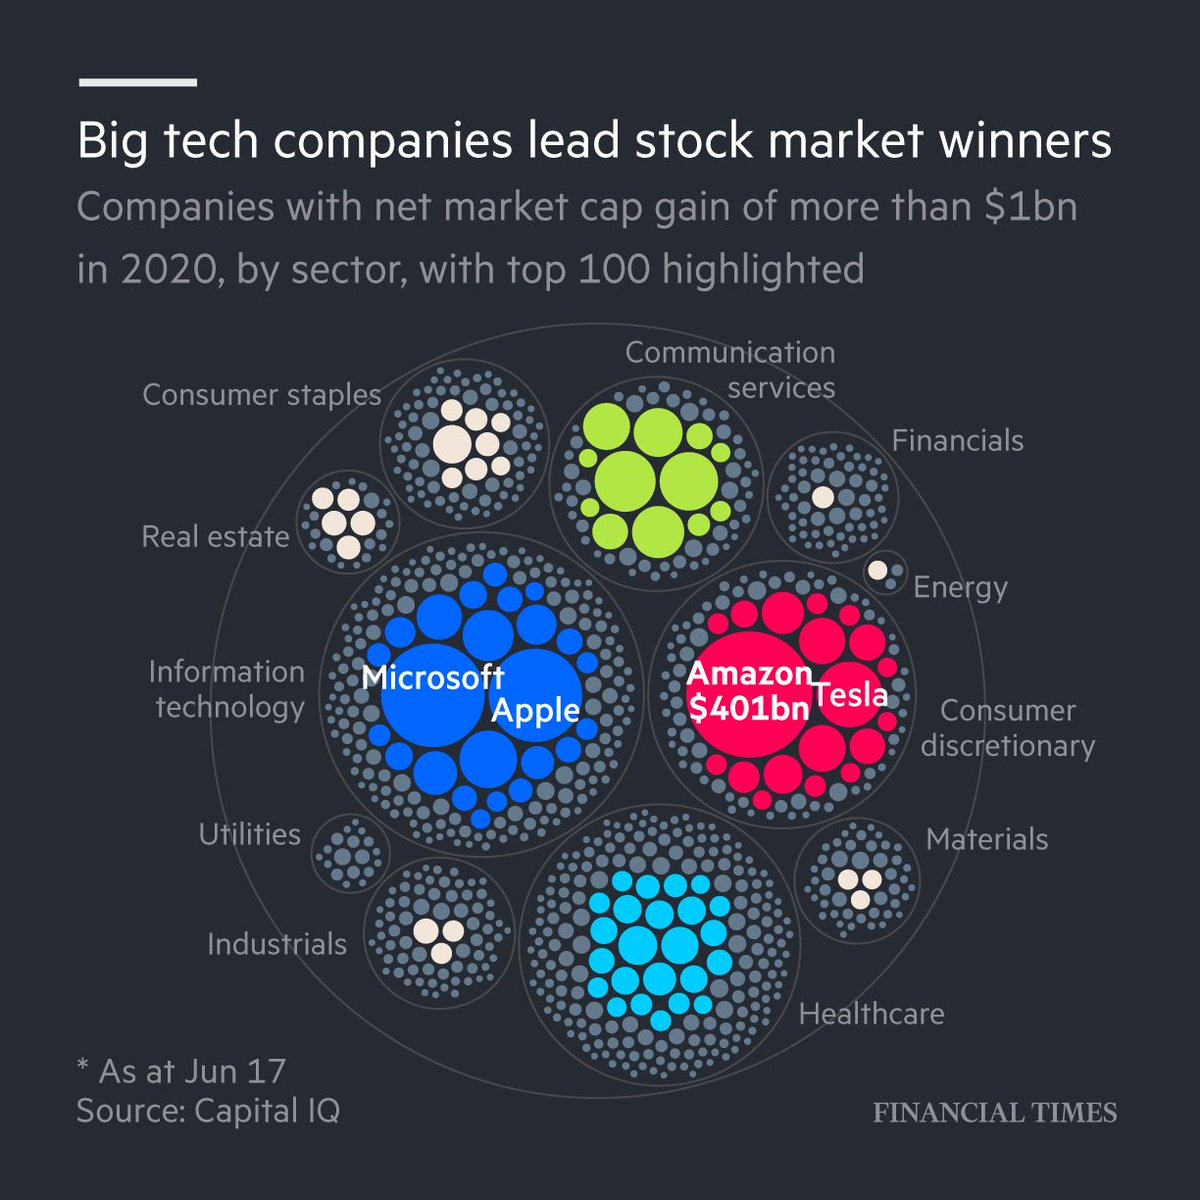 Financial Times On Twitter Us And Chinese Groups Dominate Our List Of 100 Companies That Had The Biggest Market Cap Gain During The Pandemic Read The Full List Here Https T Co Zypyeaygjx Https T Co Sftrmwcguc